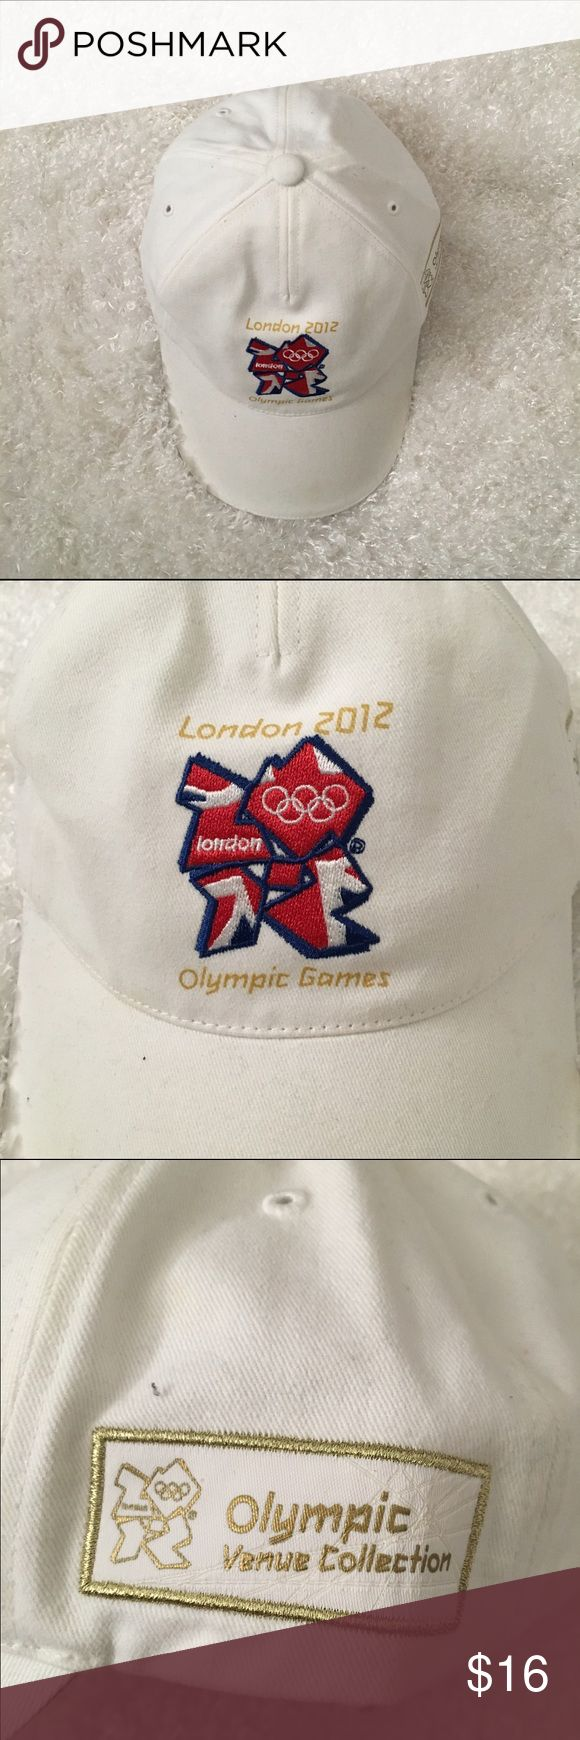 London 2012 Olympics white hat, cap, adj strap London 2012 Olympics white hat with adjustable strap.  Will be shipped in a poly envelope.  Stored in smoke and pet free household.   Please see pictures for details and ask any questions before buying to avoid return.  Check out my store for more items! Other